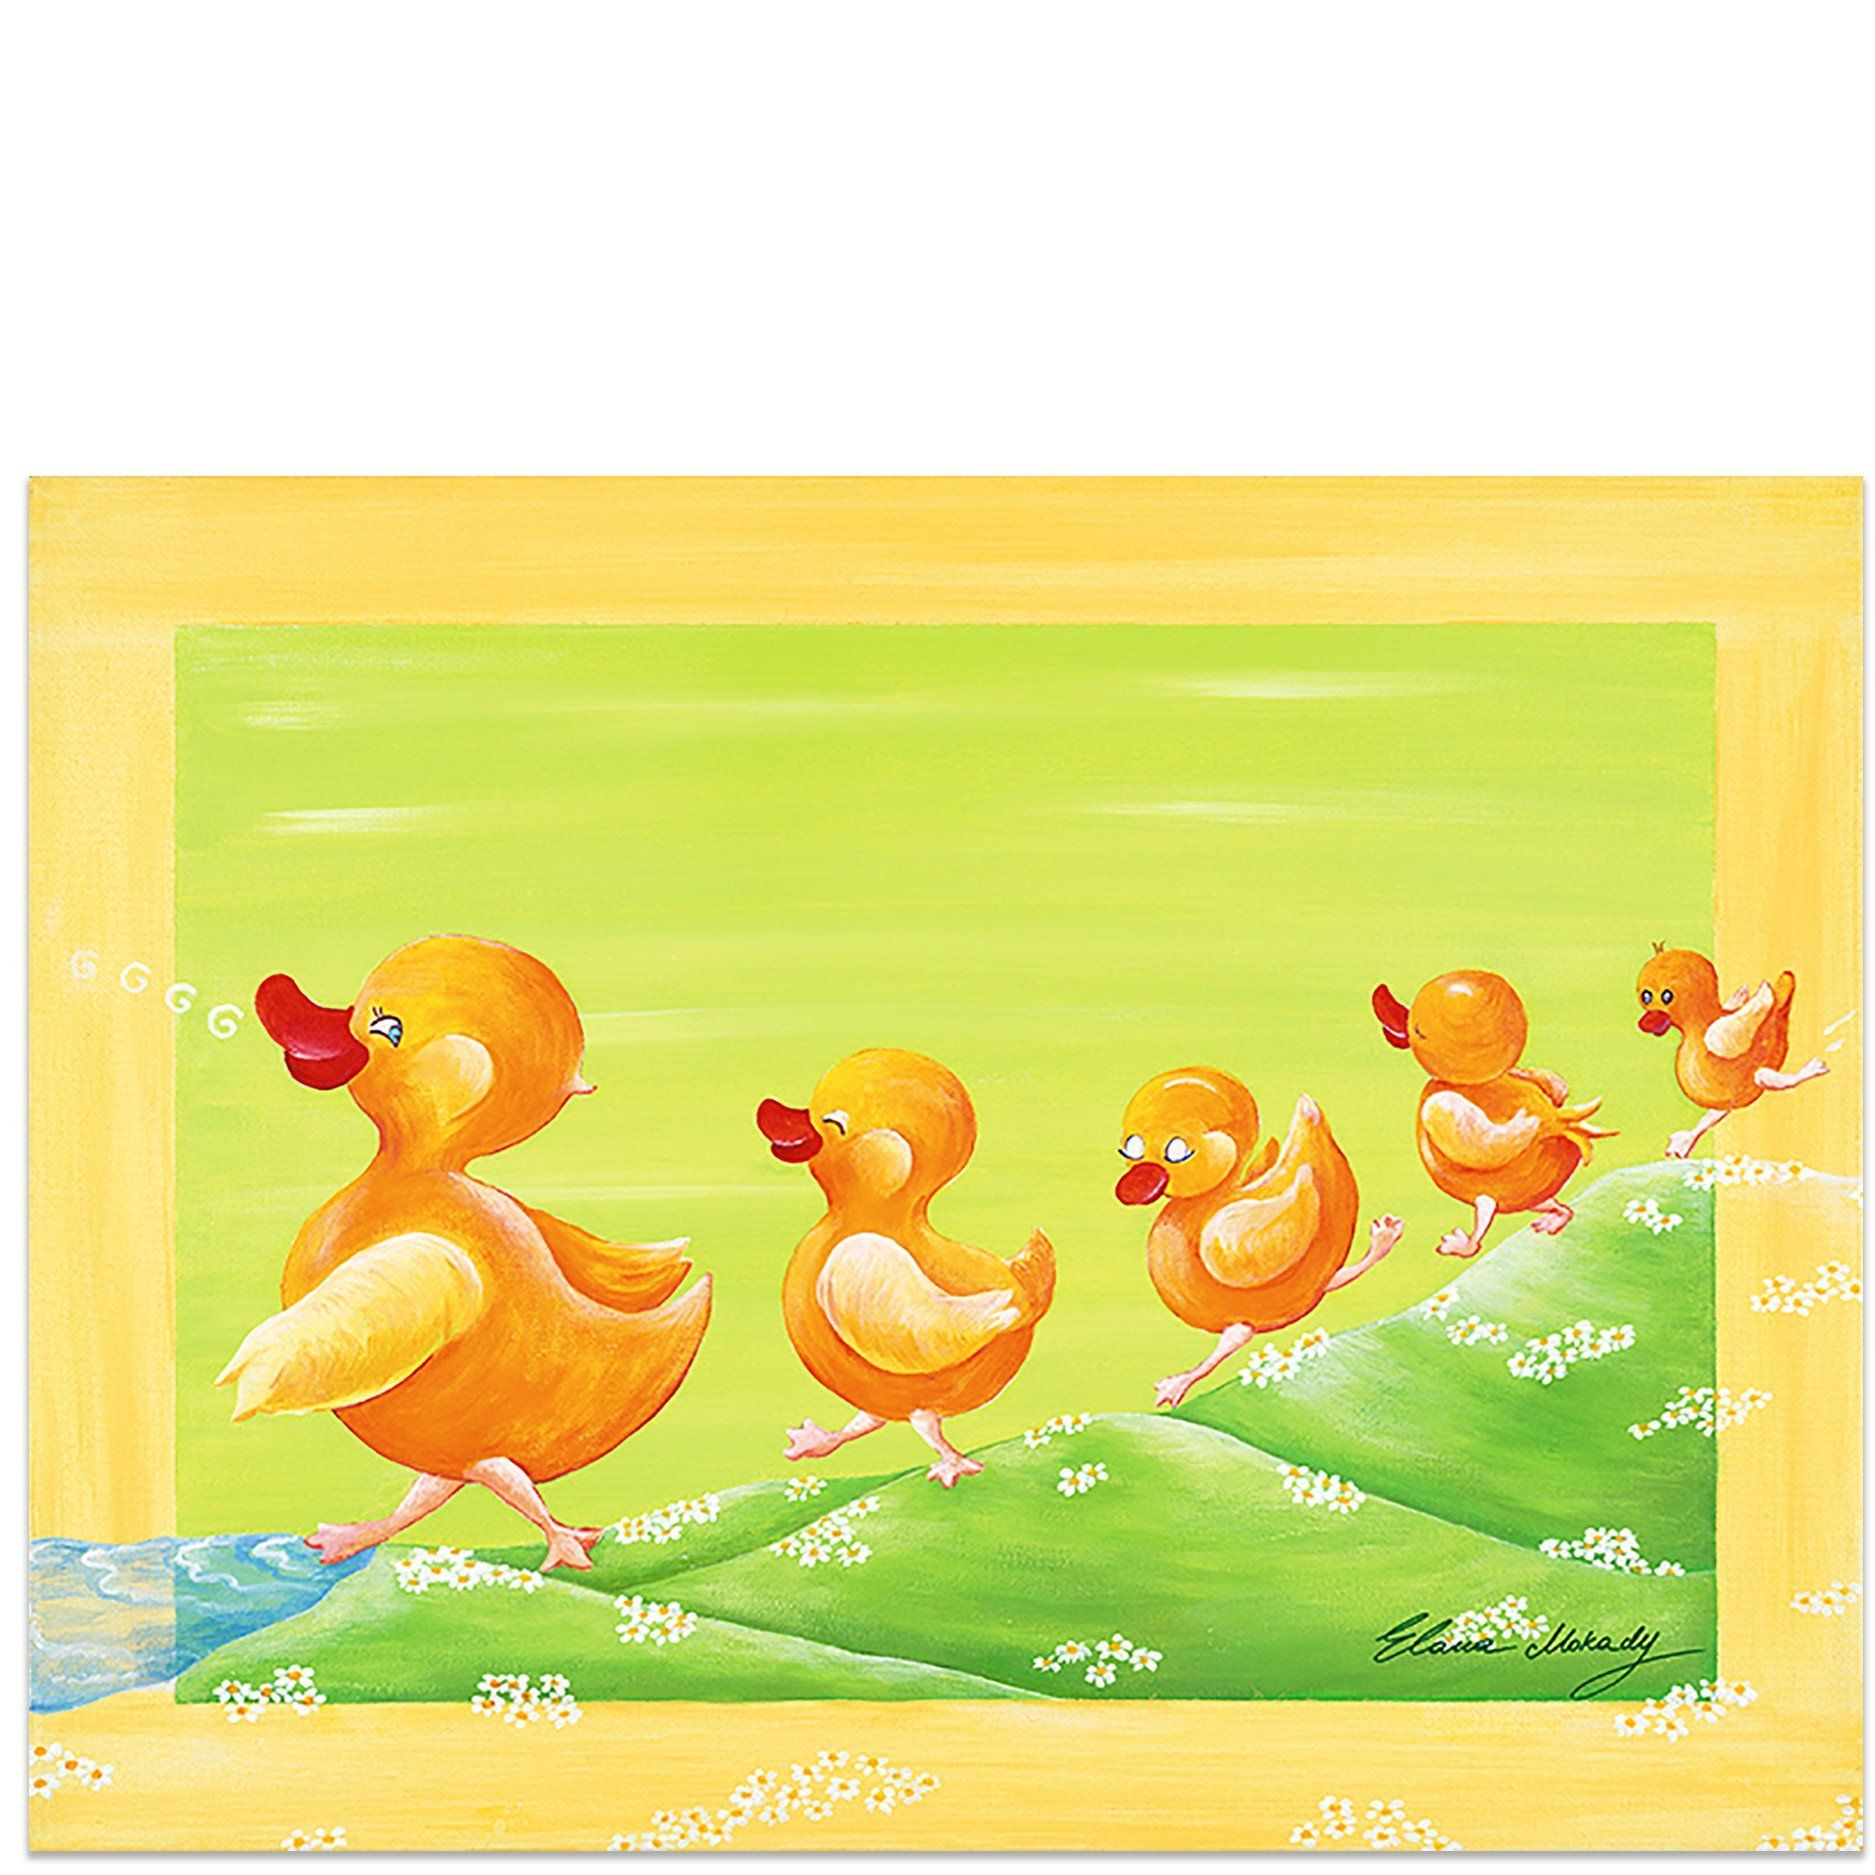 Duckling Family, Canvas Wall Art   Products   Pinterest   Family ...